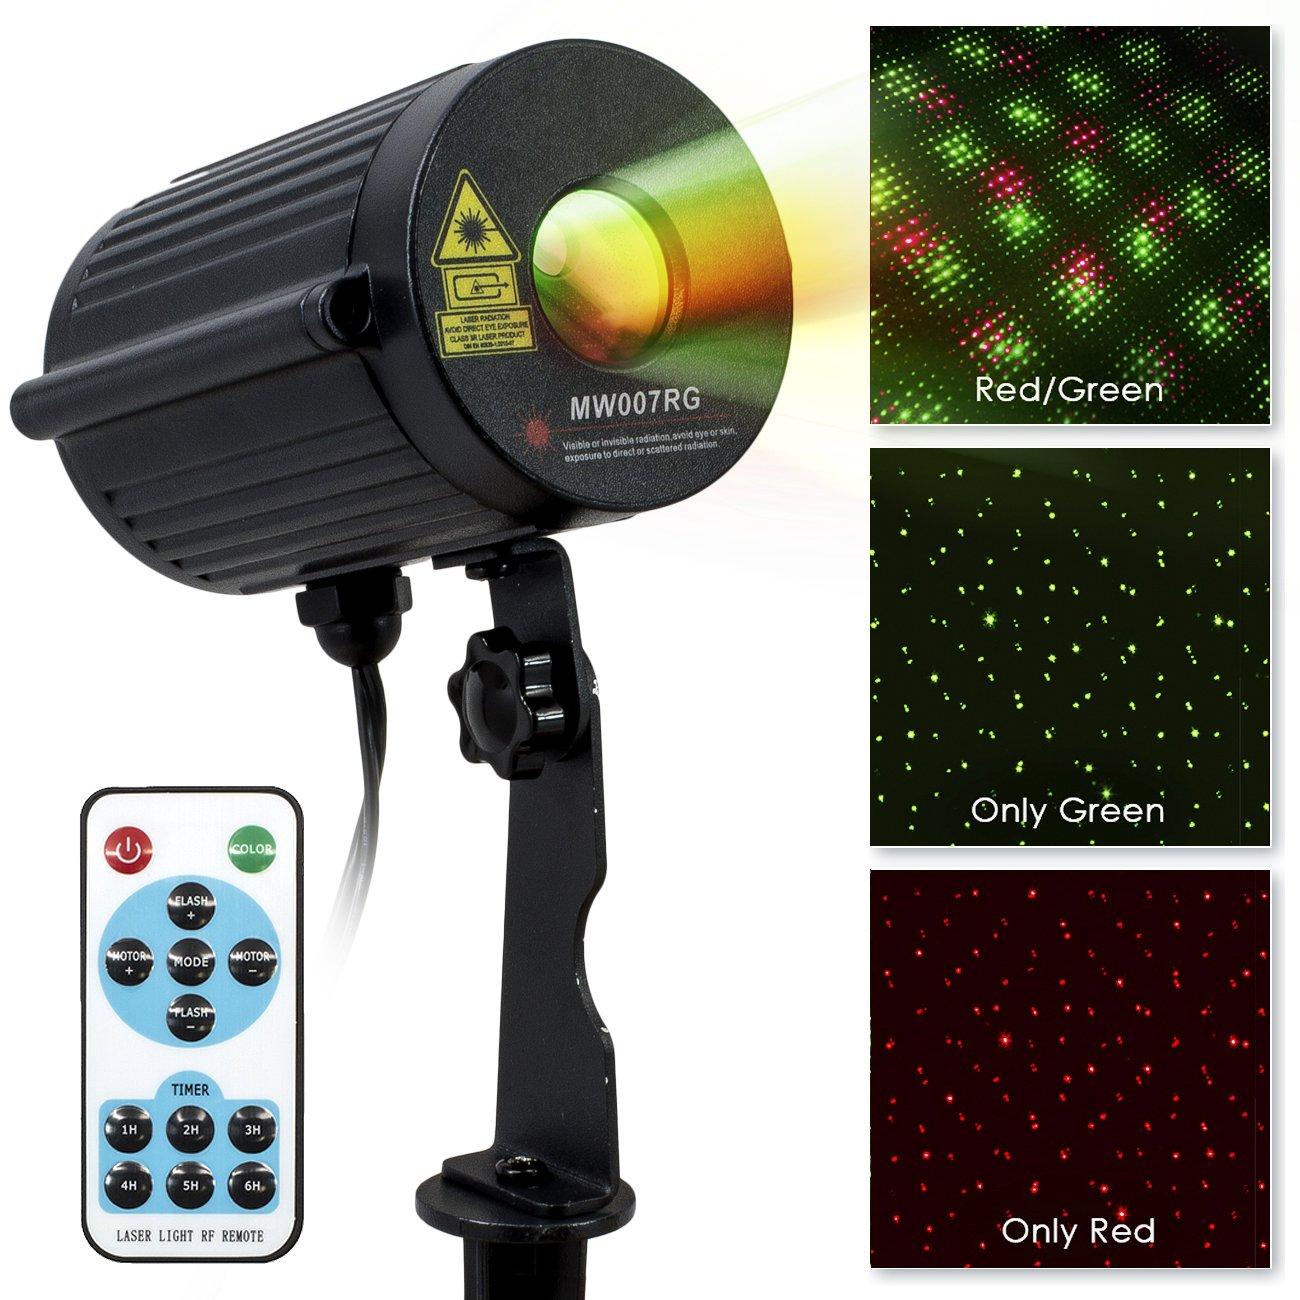 LED Concepts Laser Lights —Firefly Laser Projection Lights with Automatic Timer Remote — Ideal Party, Holiday, Christmas, Outdoor, Garden Decor—UL Listed Power Supply —(Red/Green) by LED Concepts